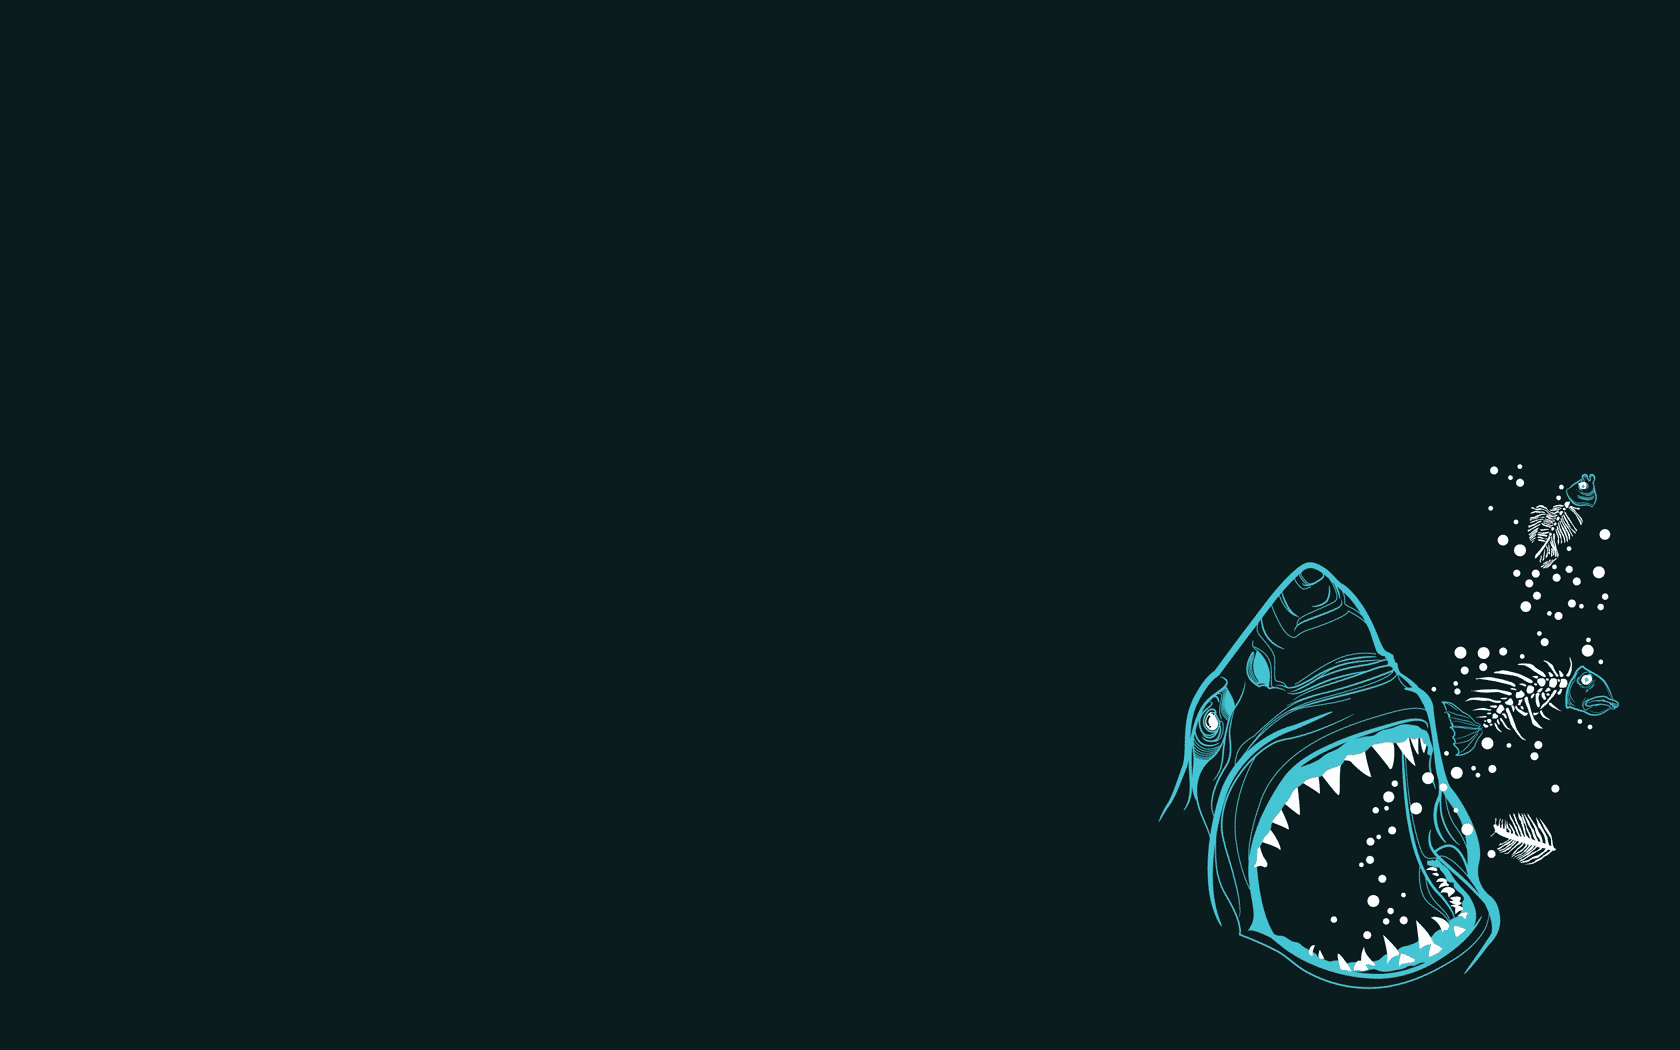 Hd Animal Wallpapers Hd Music Wallpapers: Shark Wallpaper And Background Image